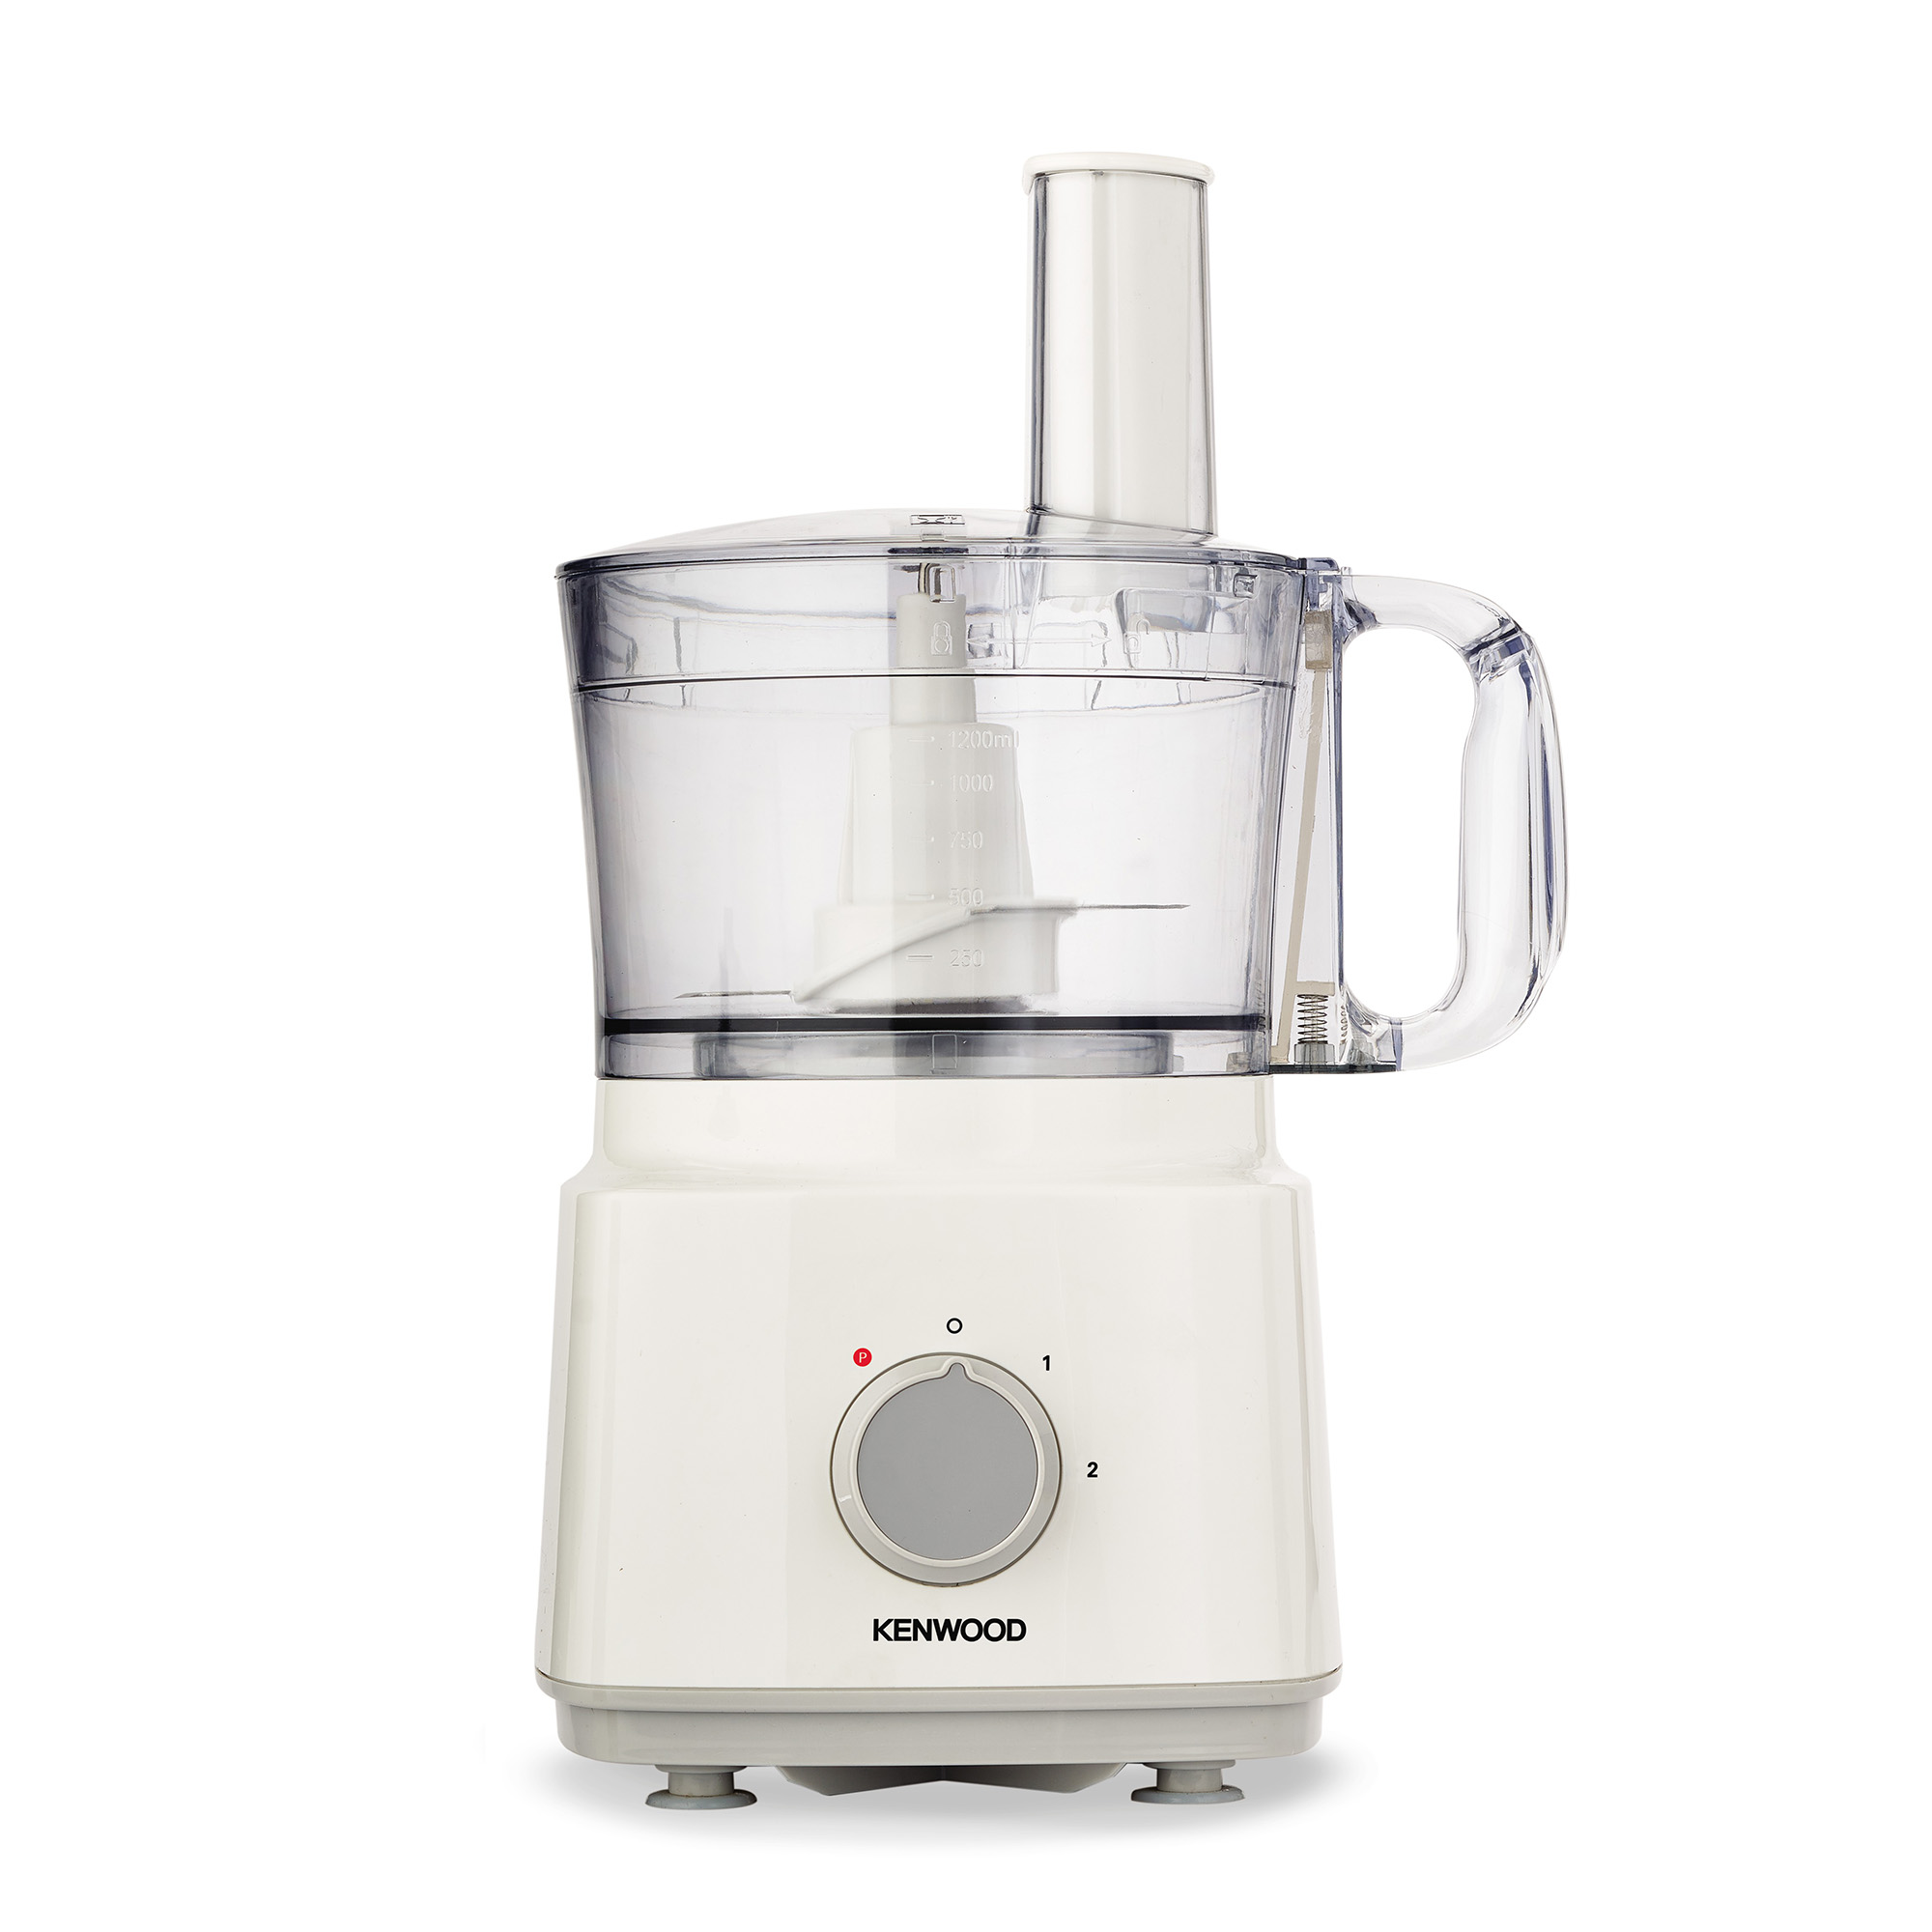 Kenwood FDP03.C0WH Food Processor - White